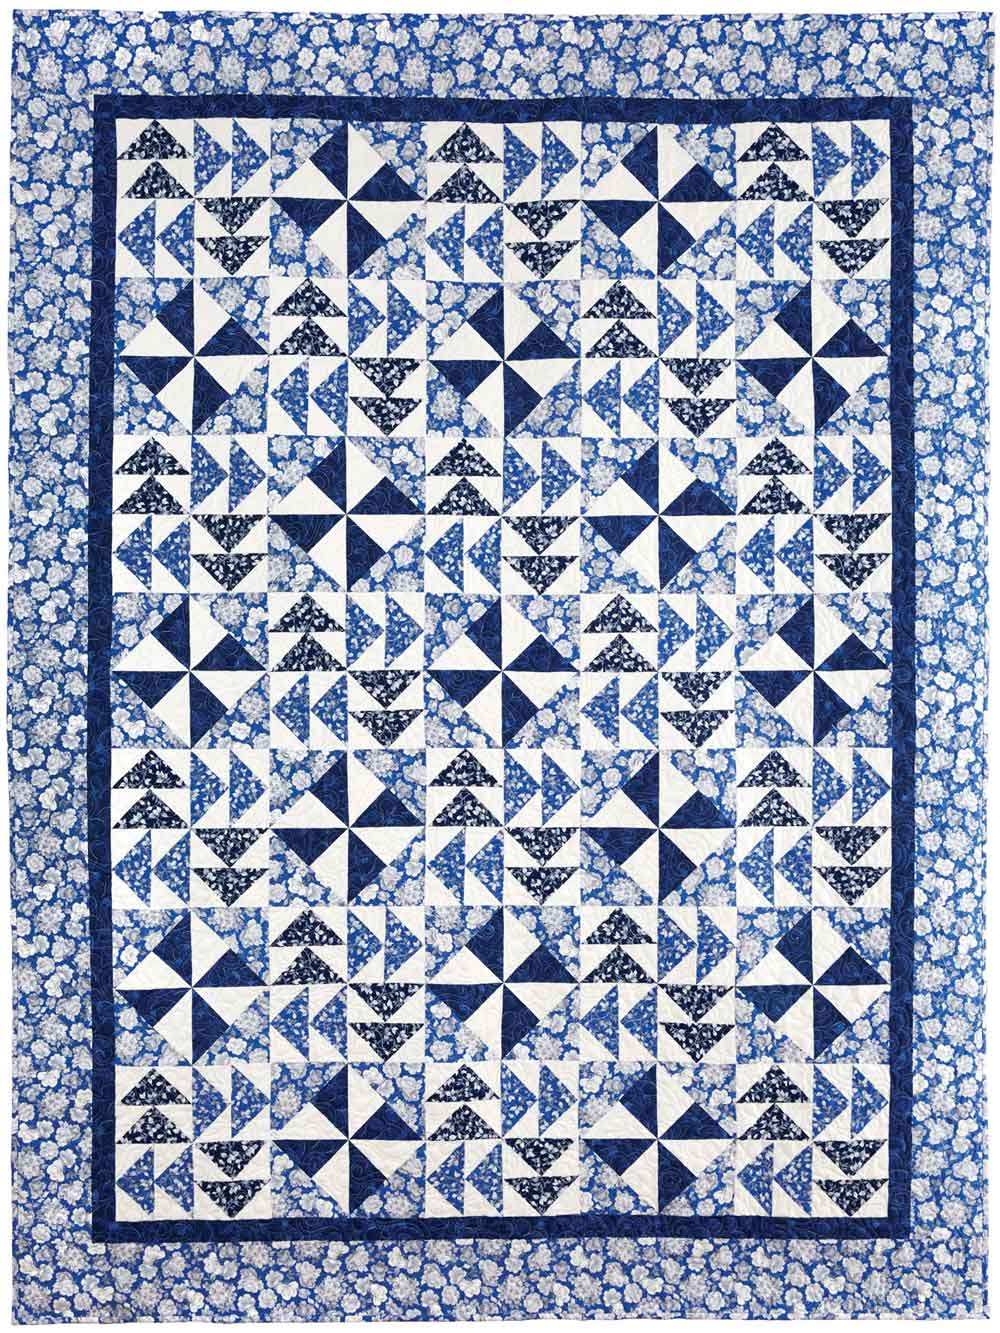 Mom Loved Blue Quilt Fons Amp Porter The Quilting Company